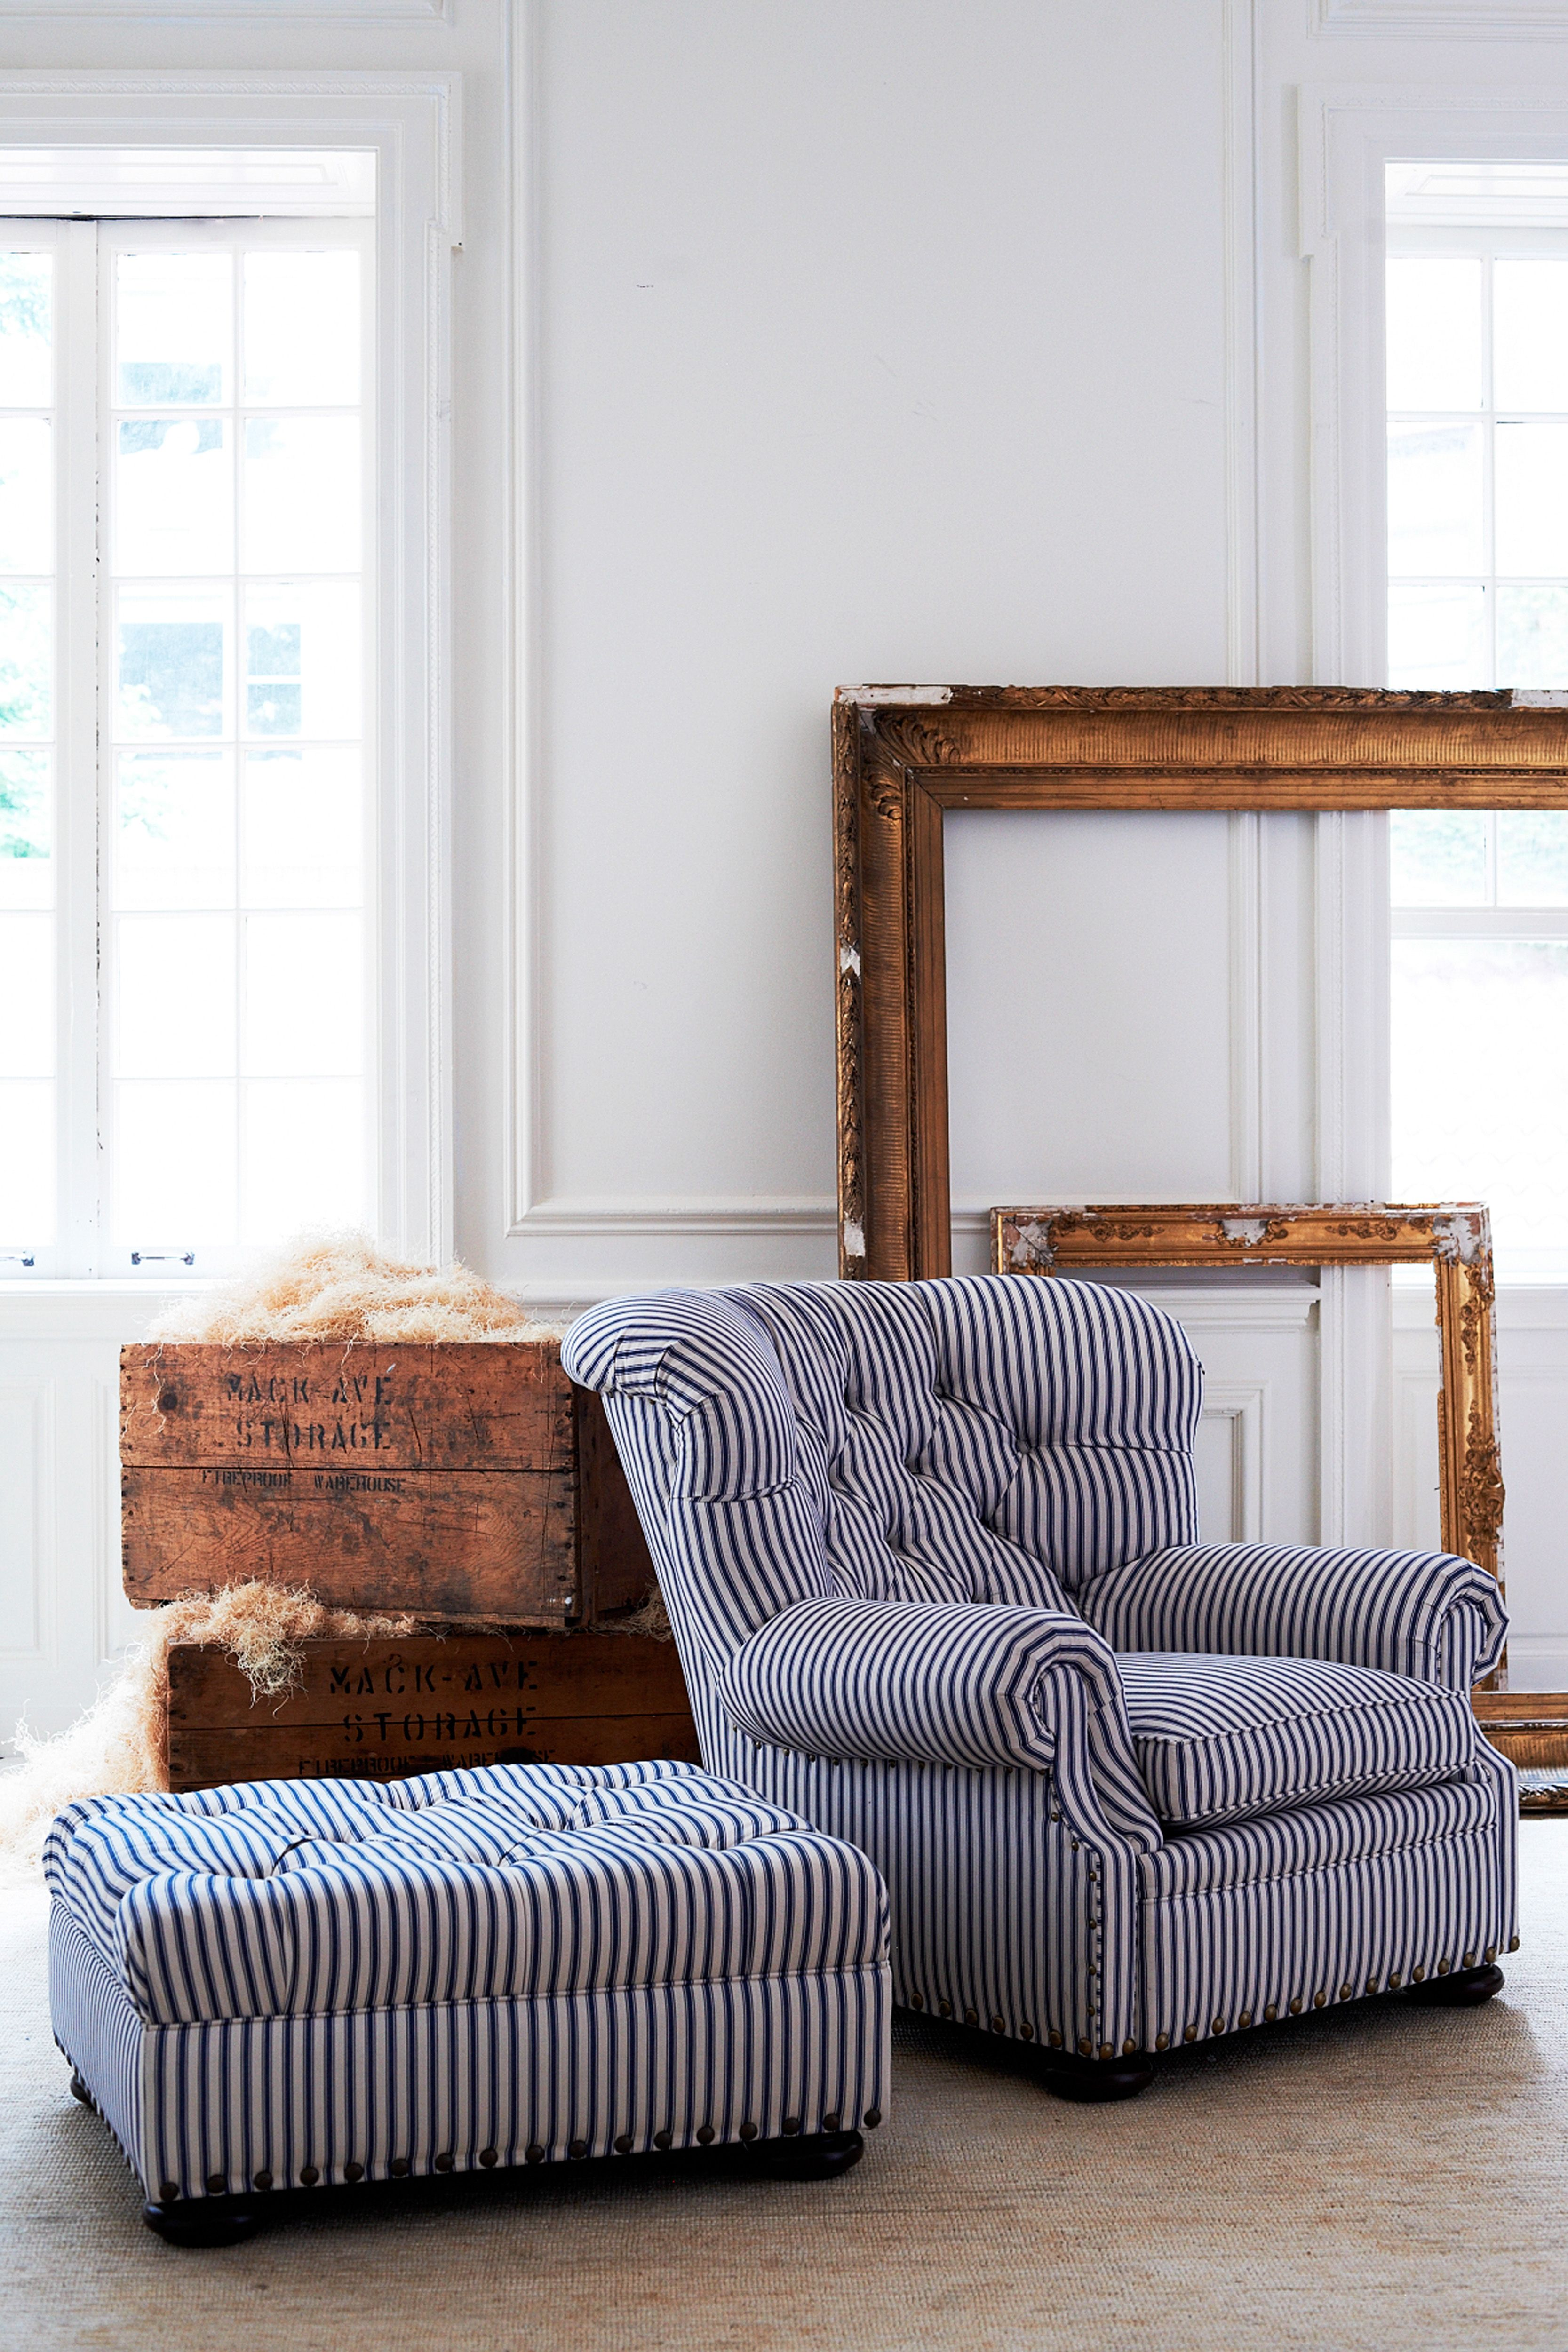 ralph lauren home's tufted writer's chair and ottoman reimagined